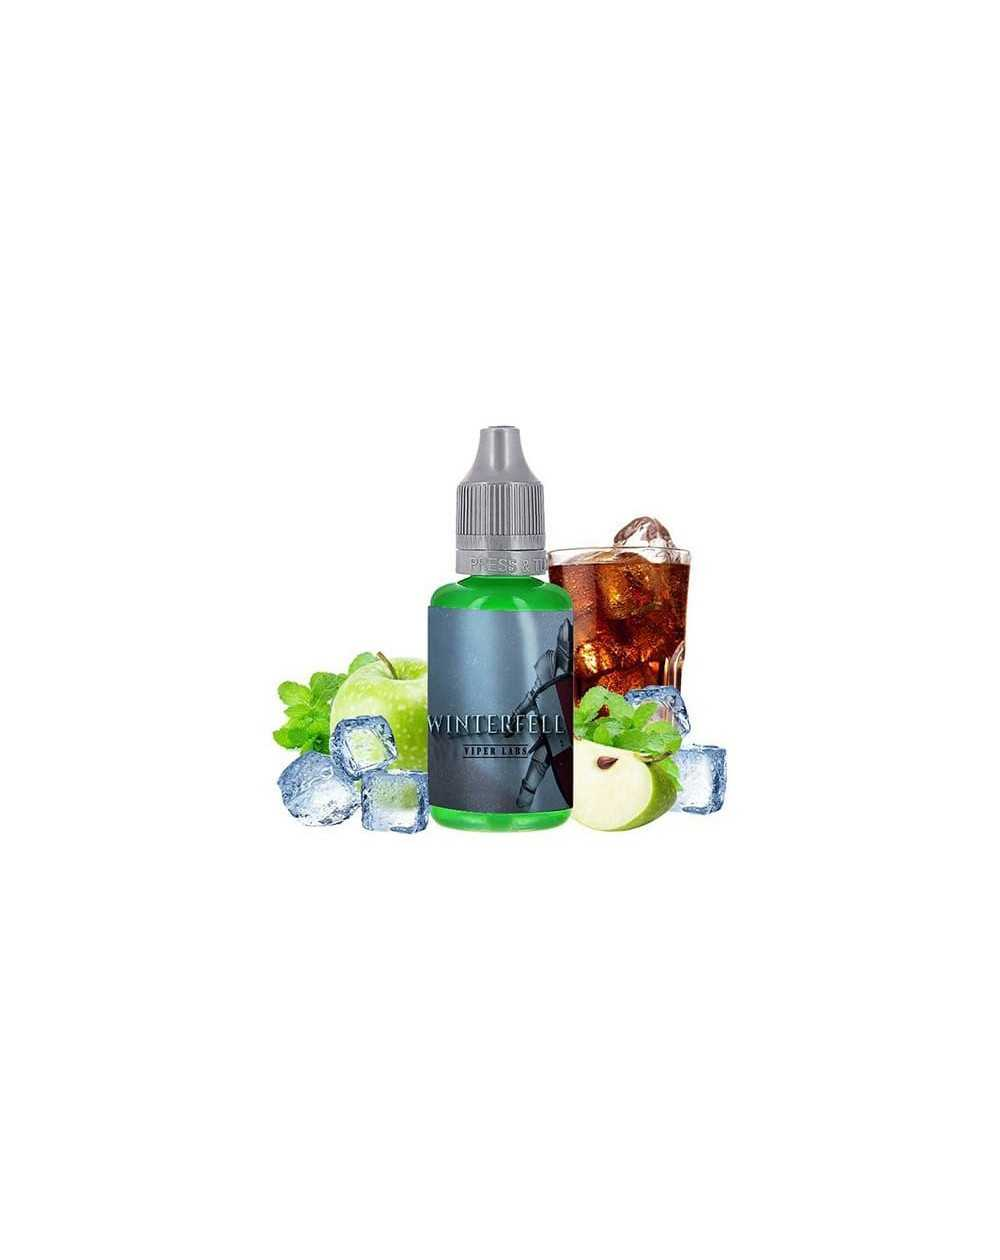 Photos de Concentrated aroma Winterfell 30ml - Viper Labs - 1